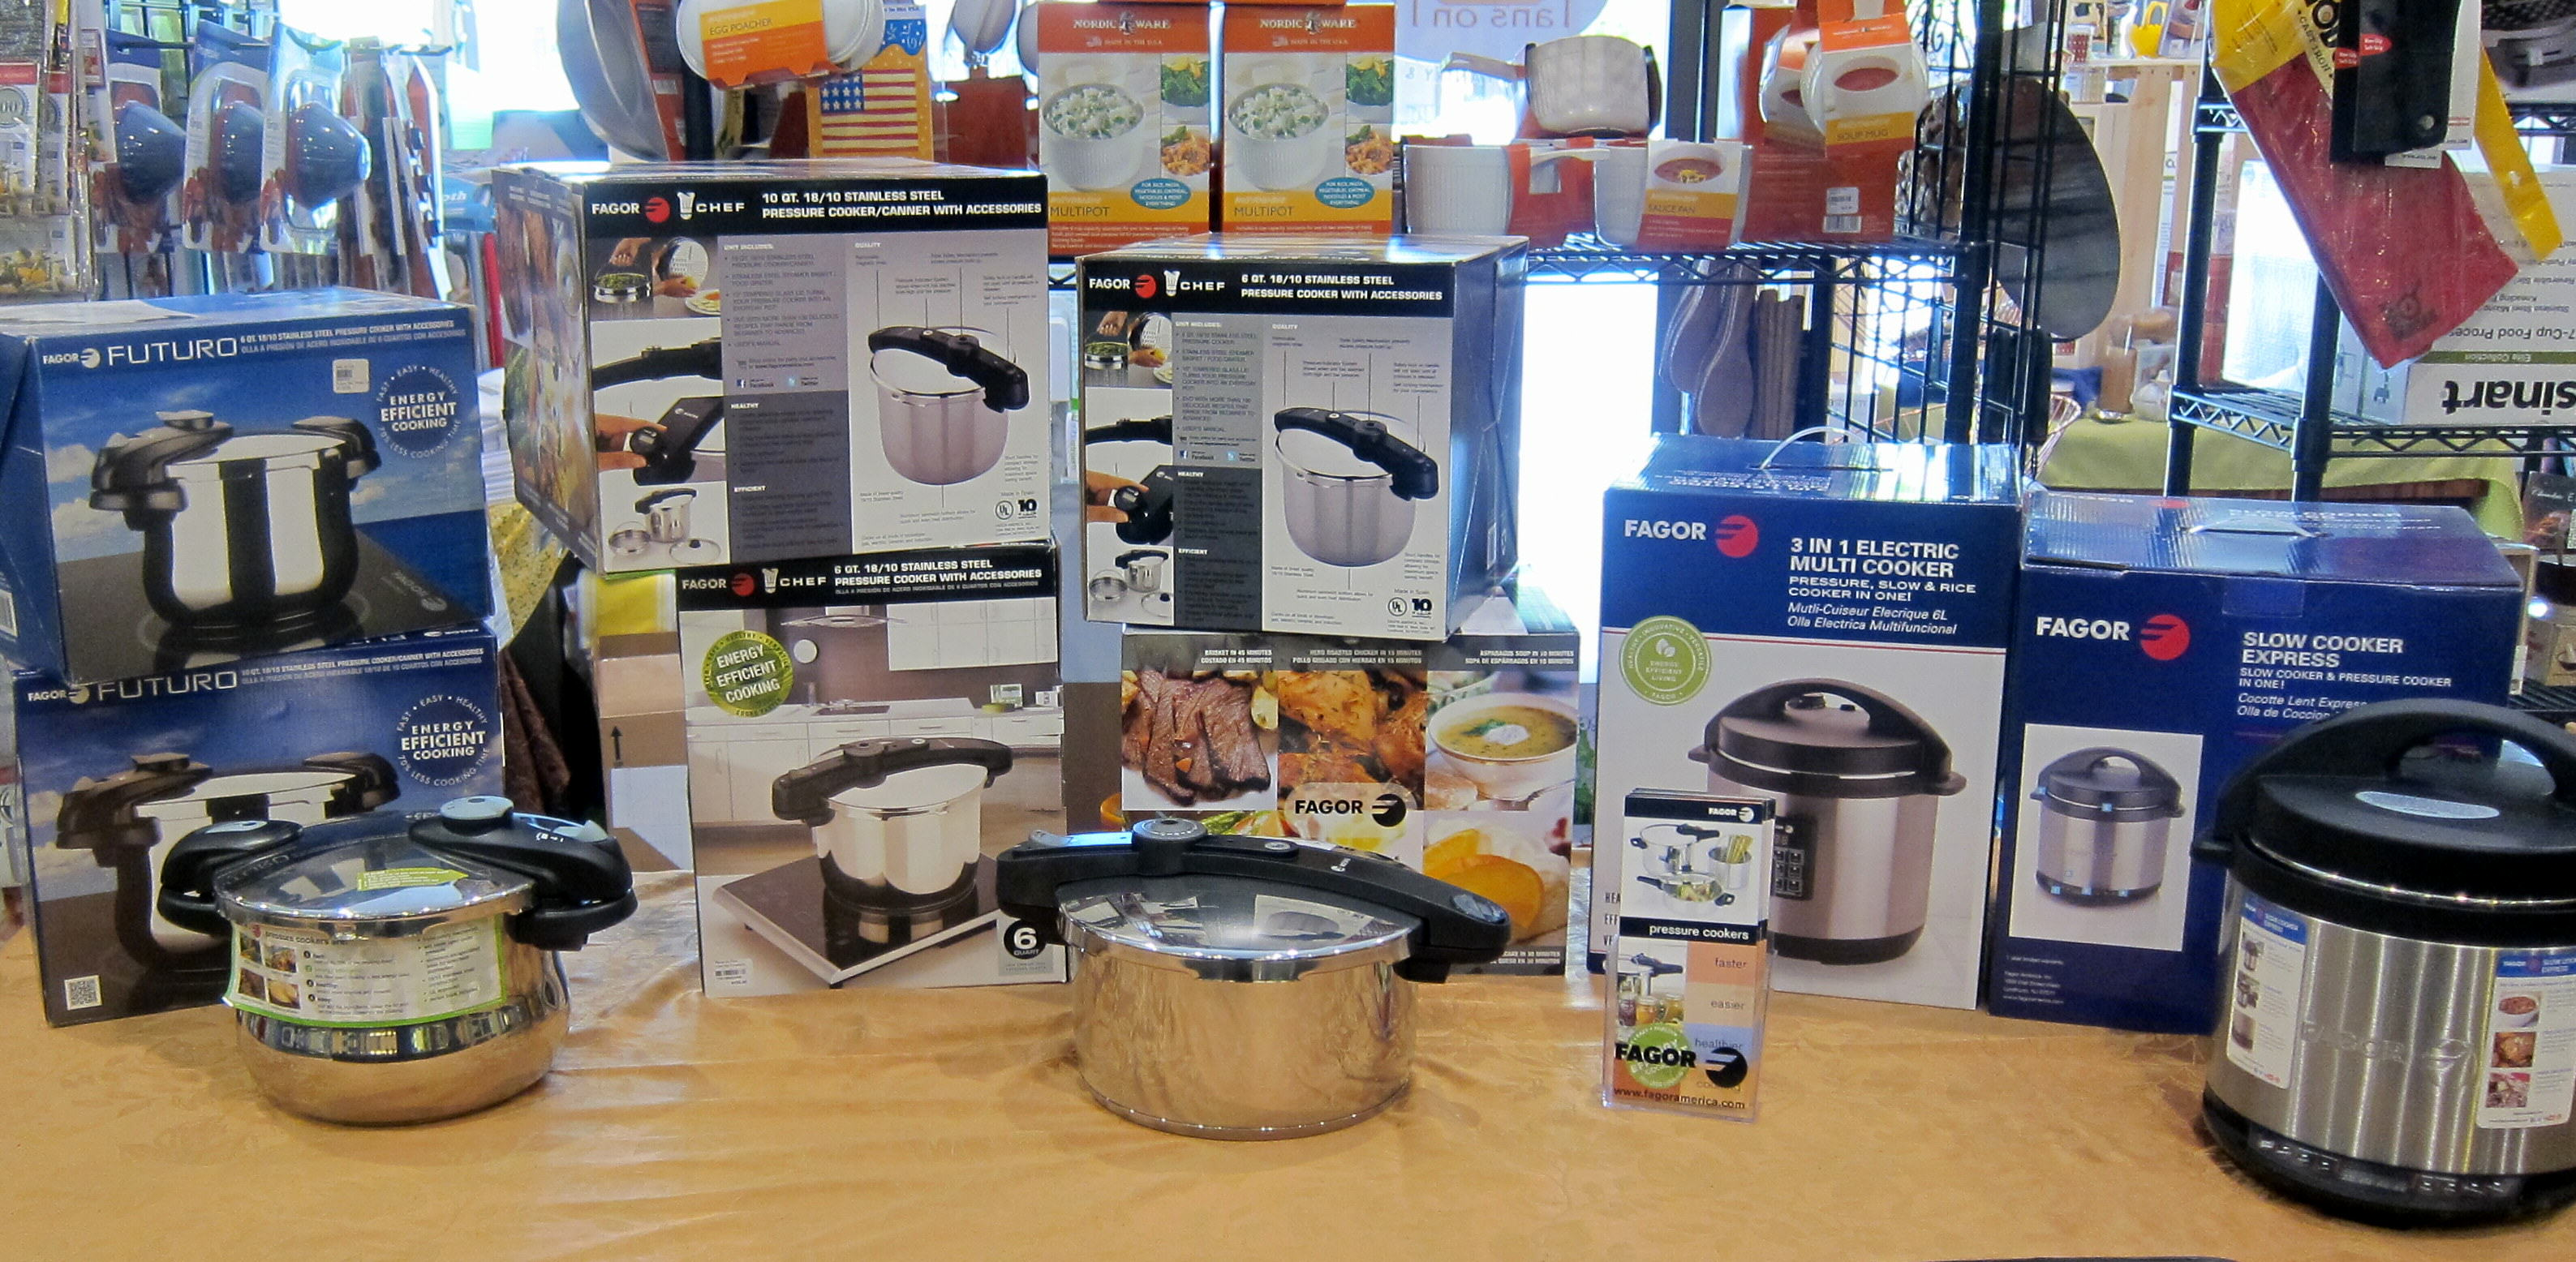 Pressure cooker display at Pans on Fire